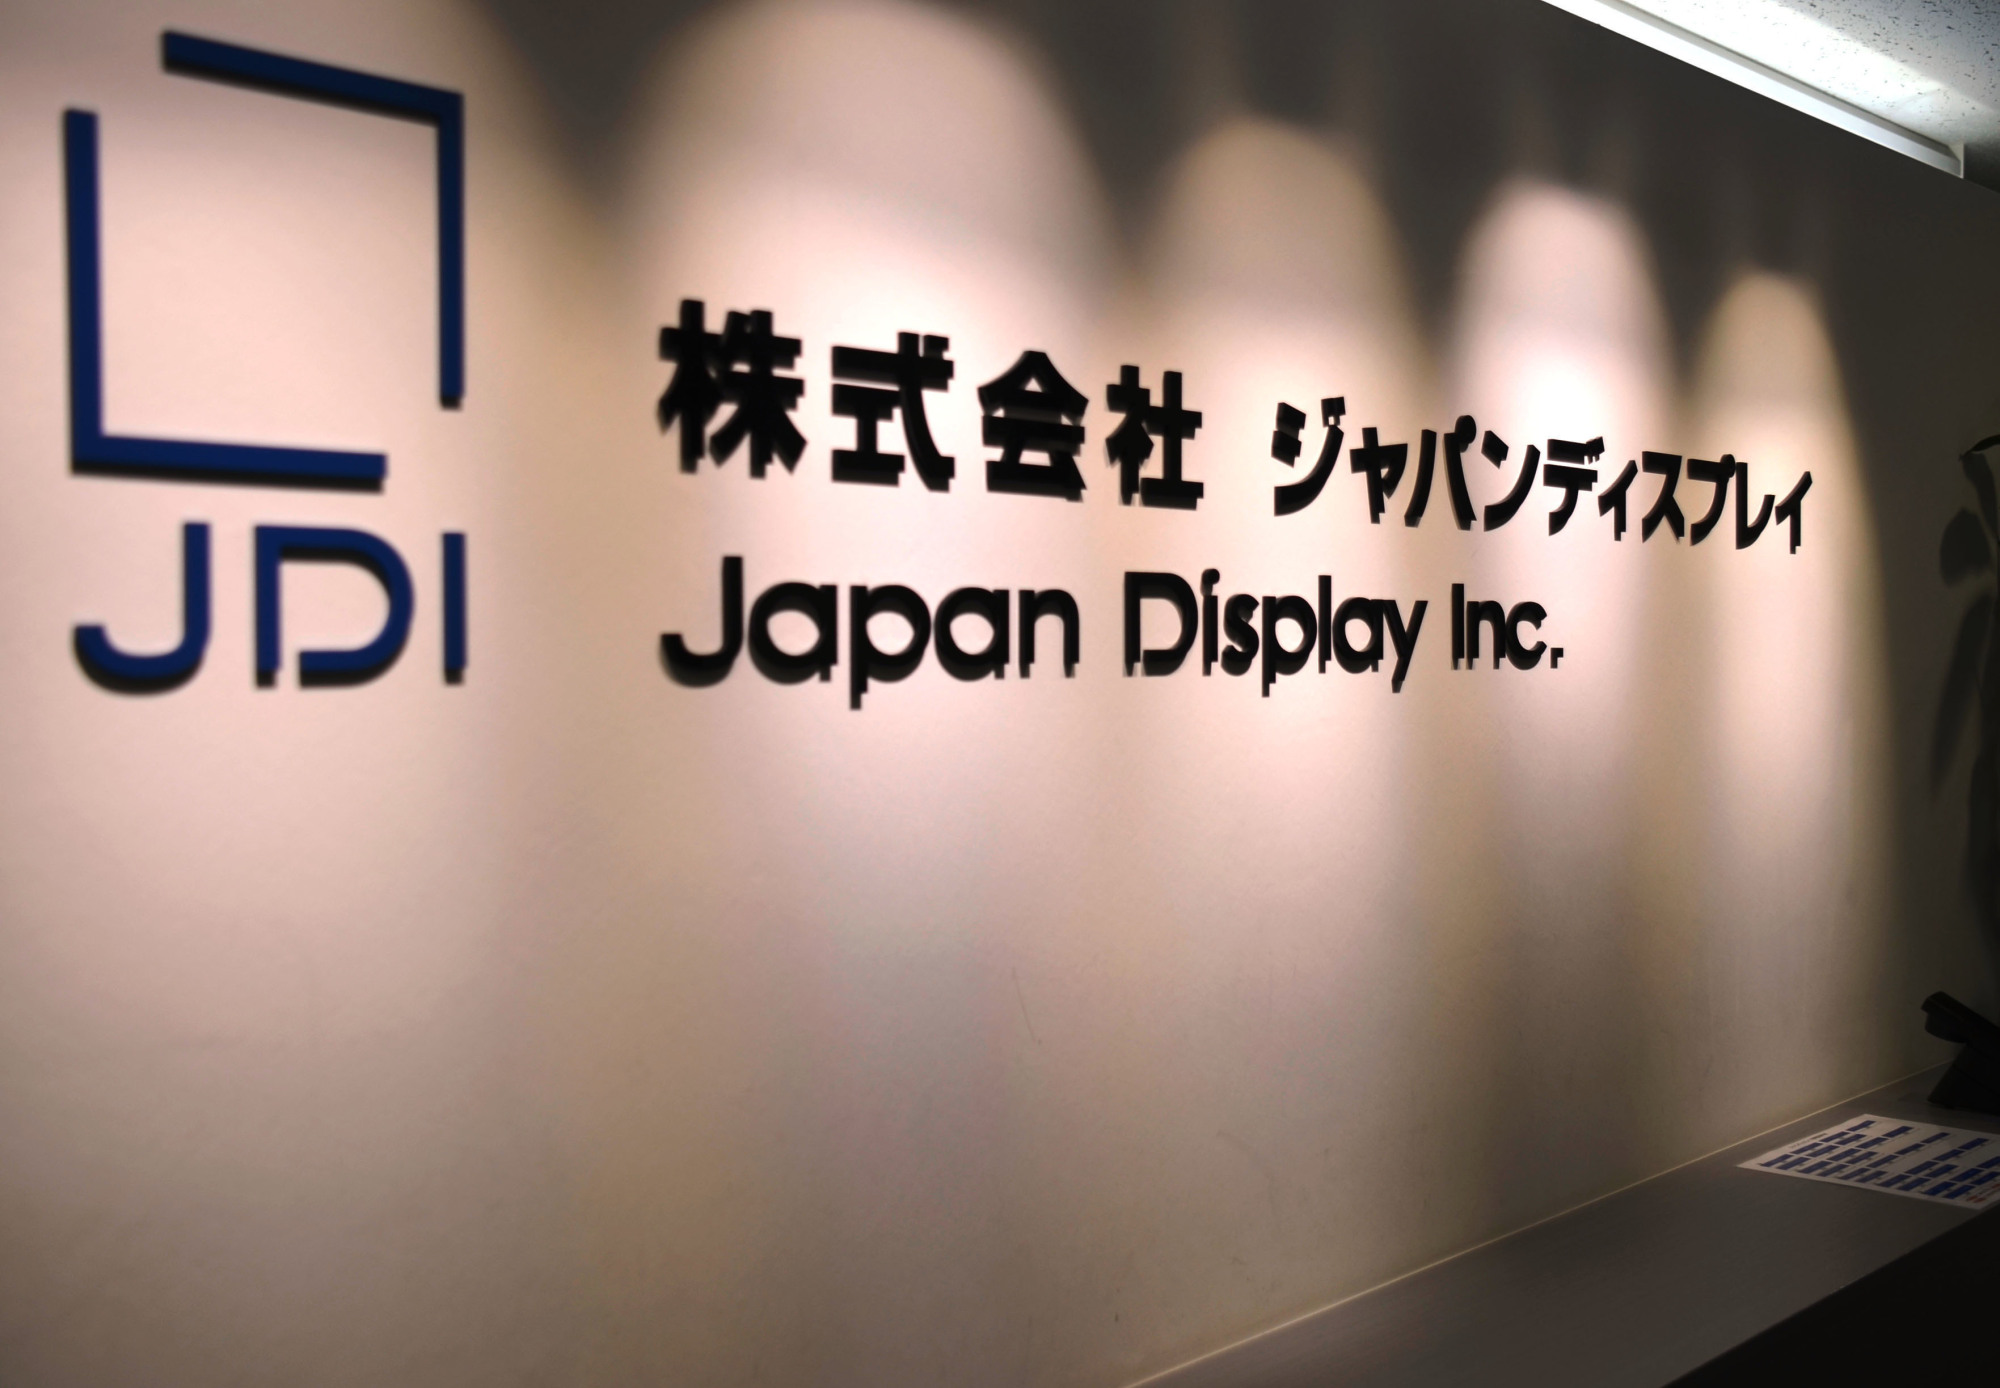 Tokyo-based Japan Diplay Inc. is one of many Japanese manufacturers being buffeted by trade friction between the U.S. and China. | KYODO